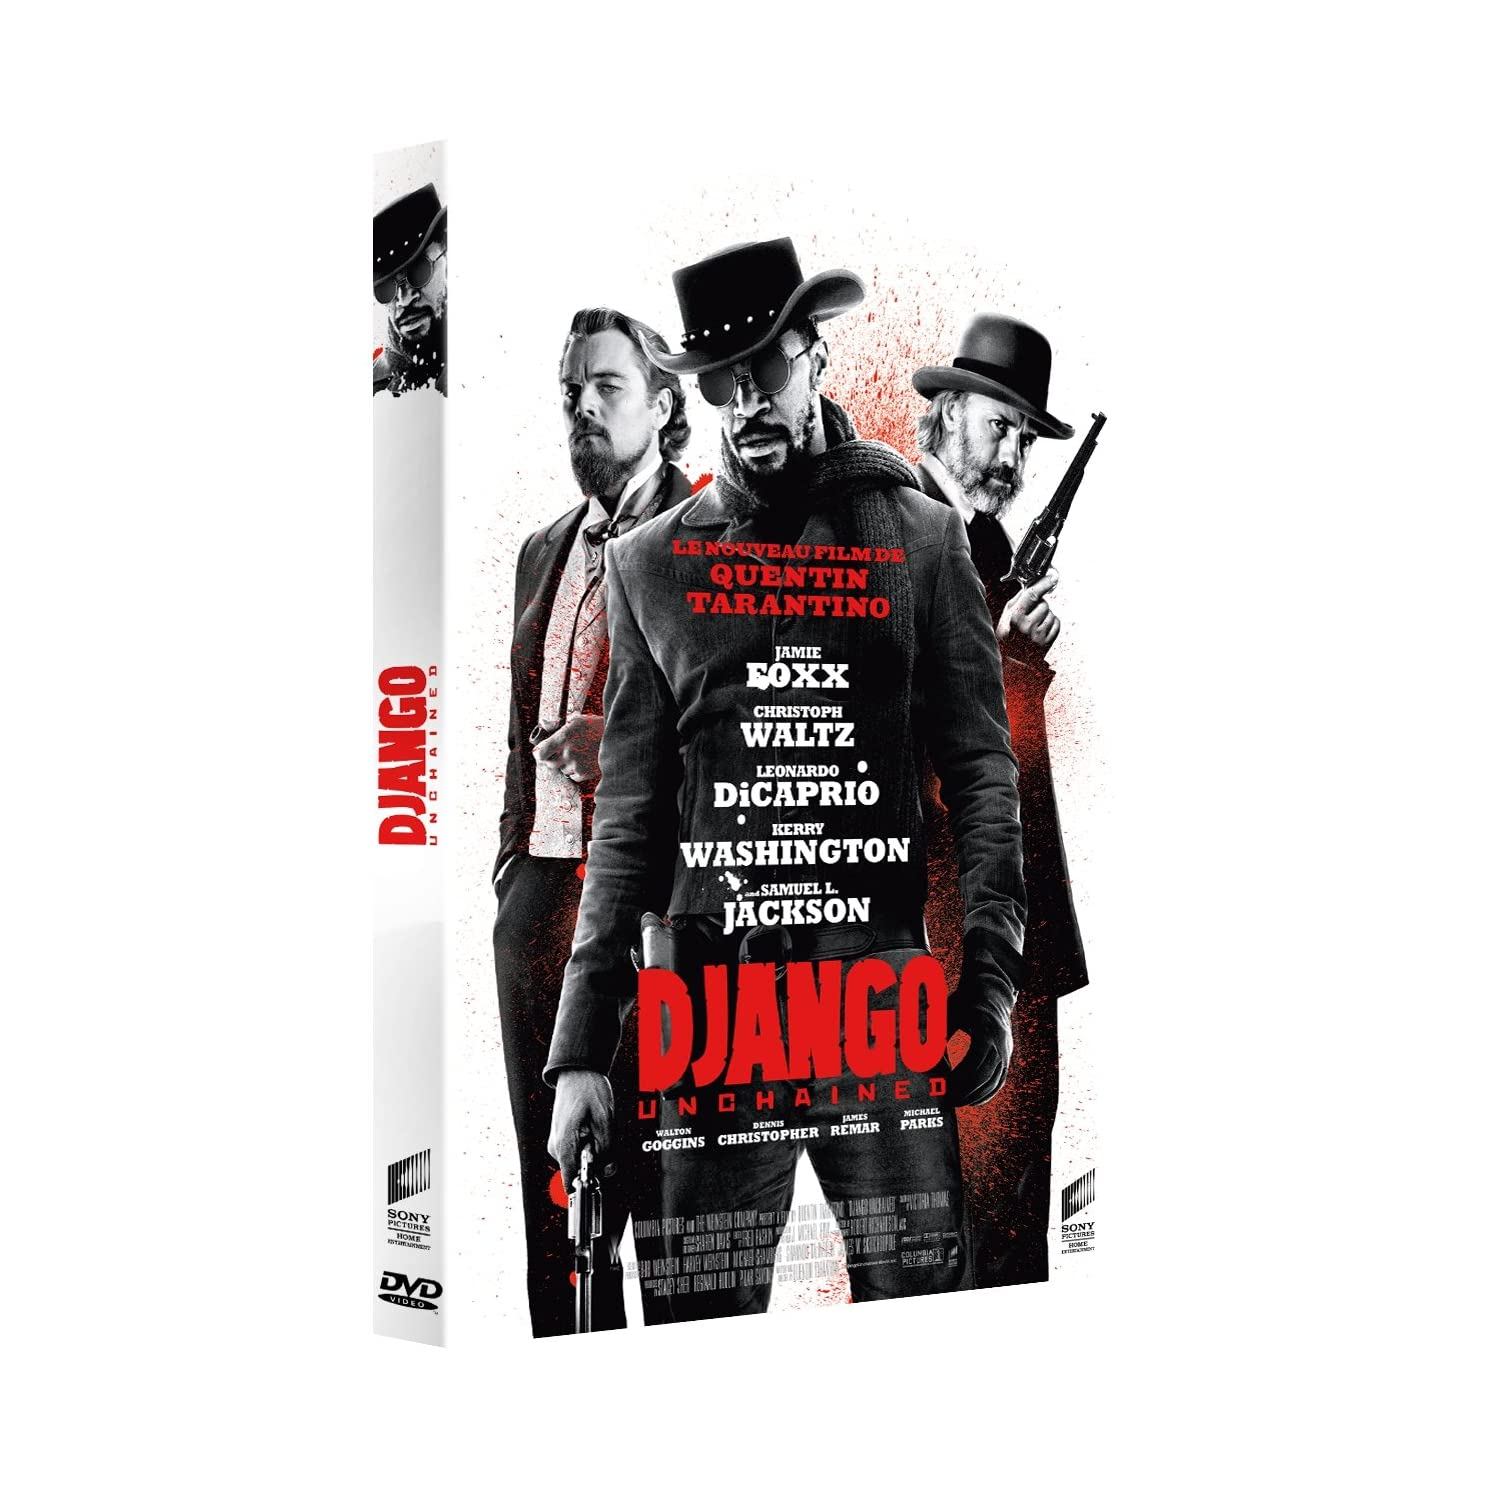 tarentino unleashed django unchained Django unchained is the most underrated quentin tarantino soundtrack  my father's reaction and mine was characteristic of at least one slice of the confusion that django unchained unleashed.